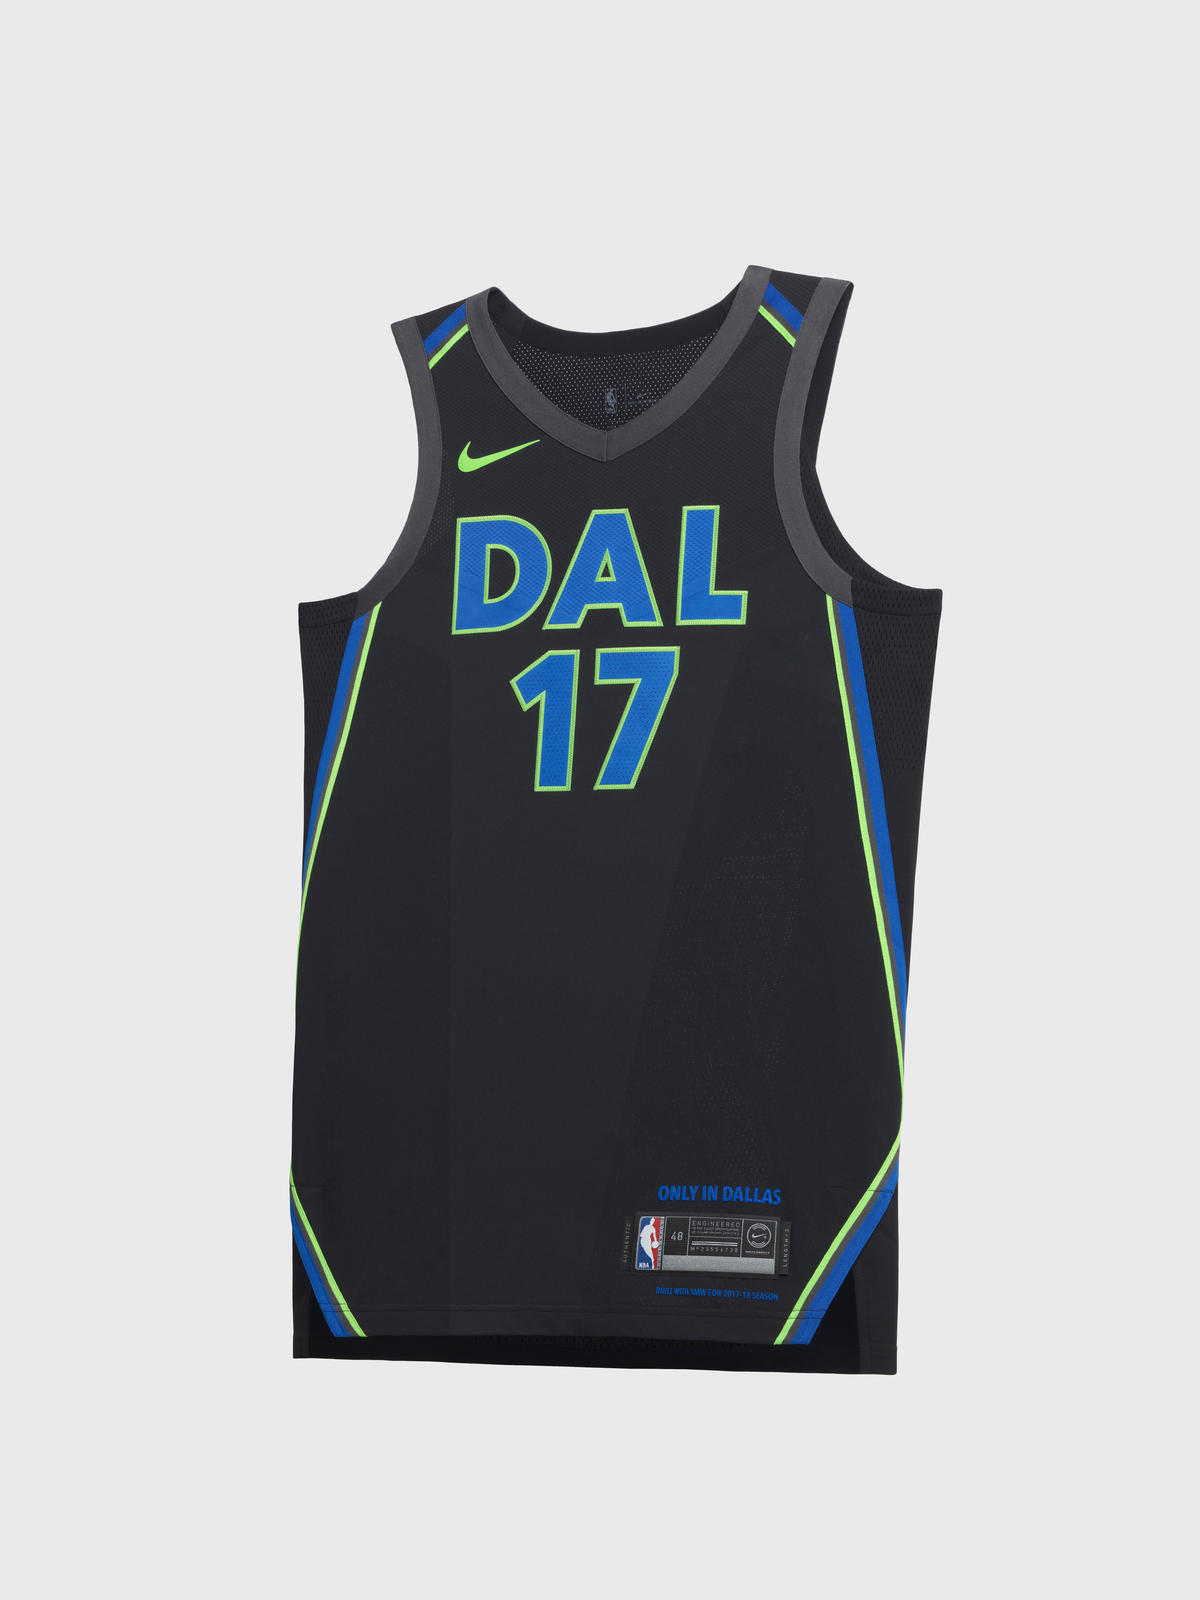 Nike NBA City Edition Uniform - Nike News a692f69c6